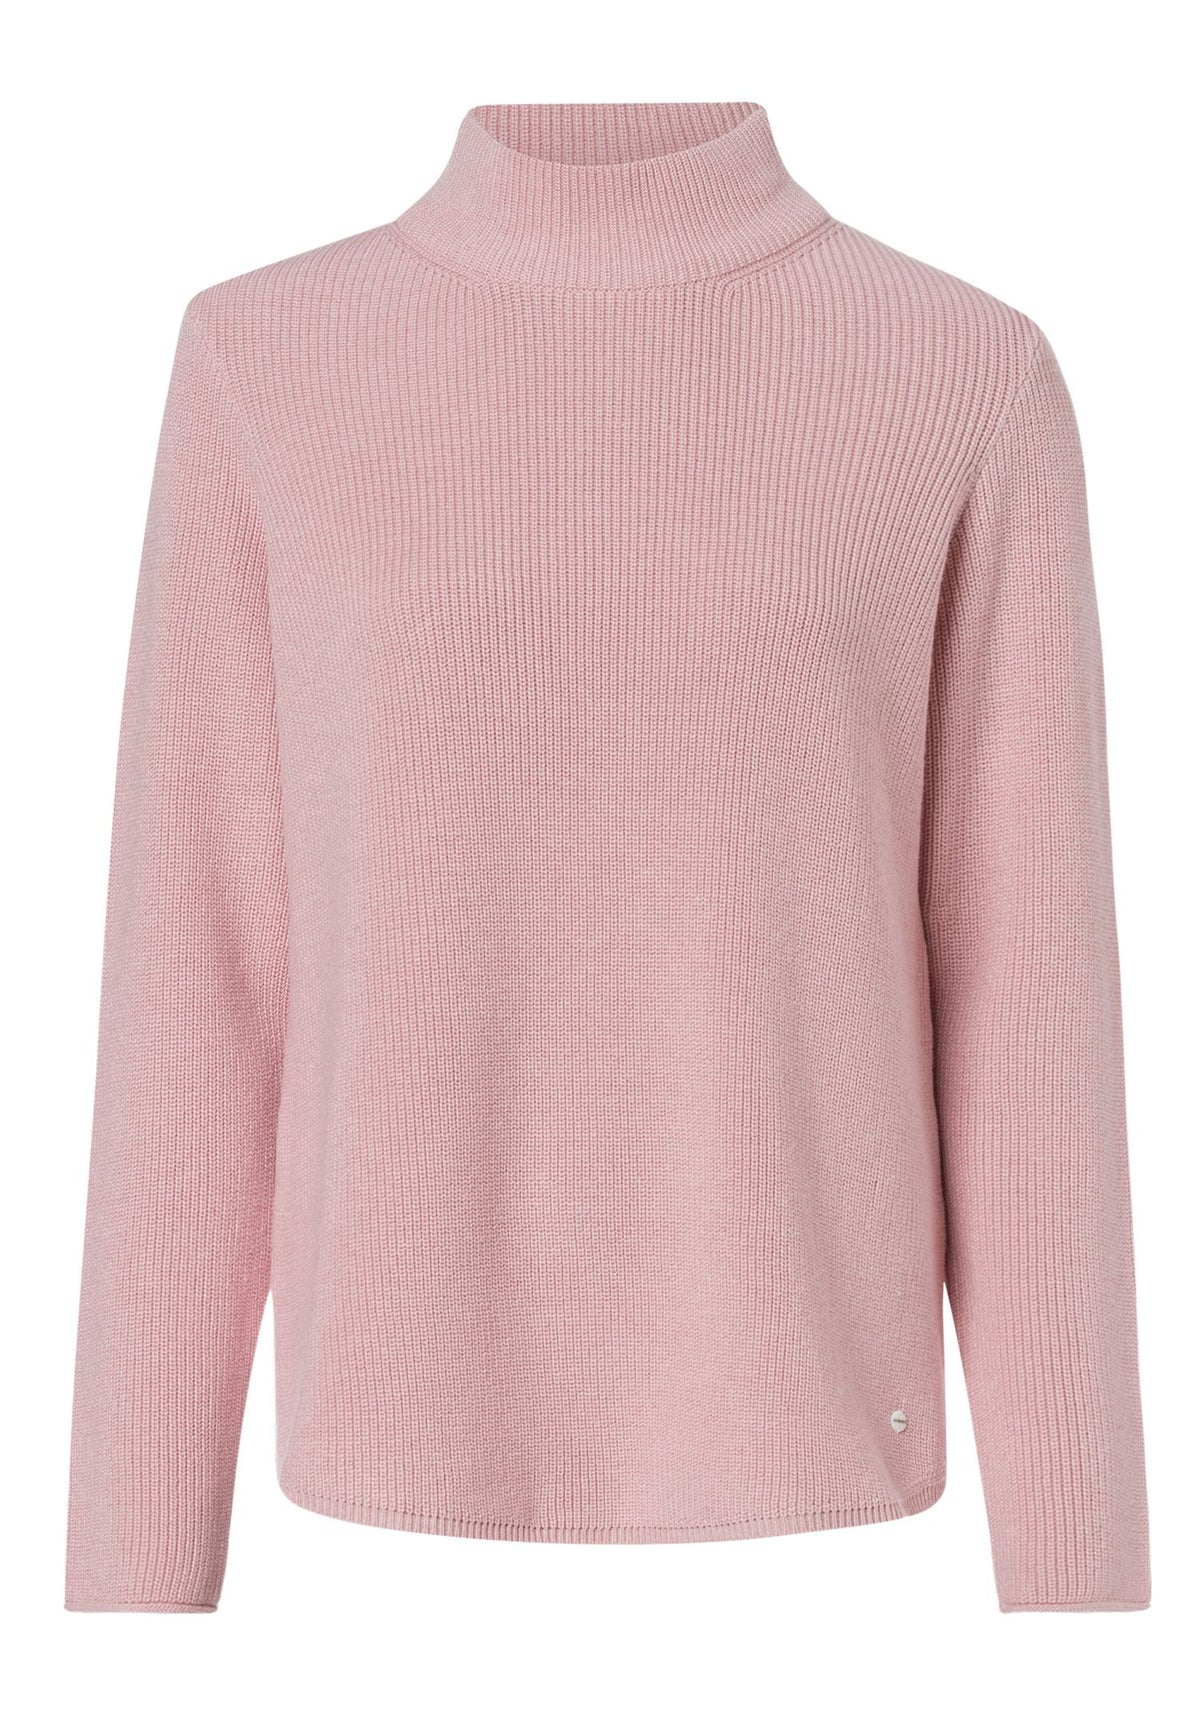 Cotton Blend Long Sleeve Mock Neck Sweater